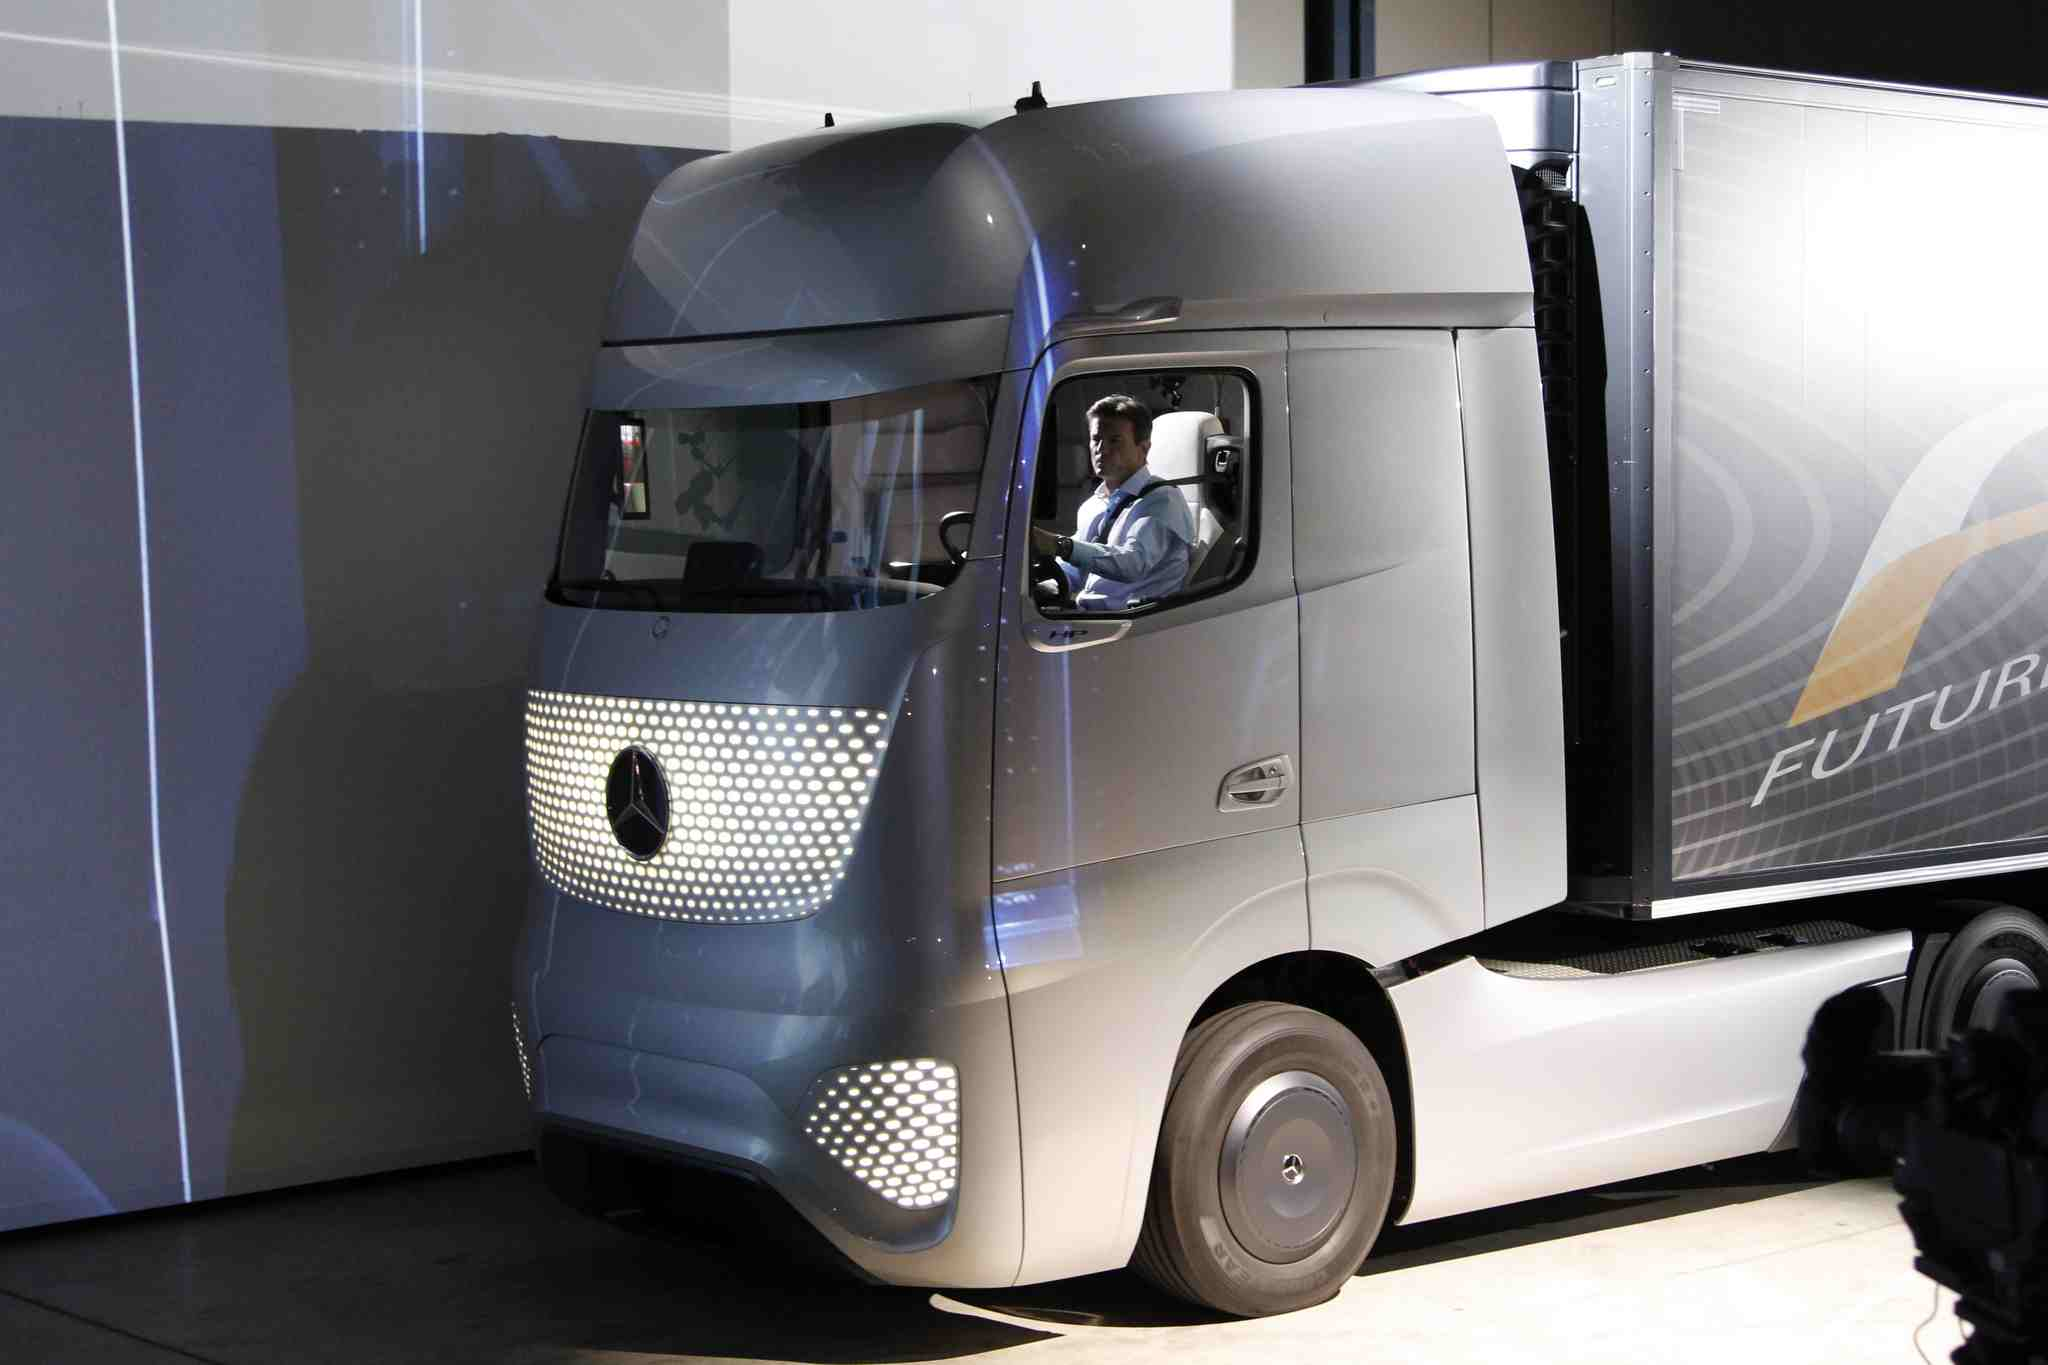 Mercedes benz future truck 2025 makes its debut at the iaa for 2014 mercedes benz truck